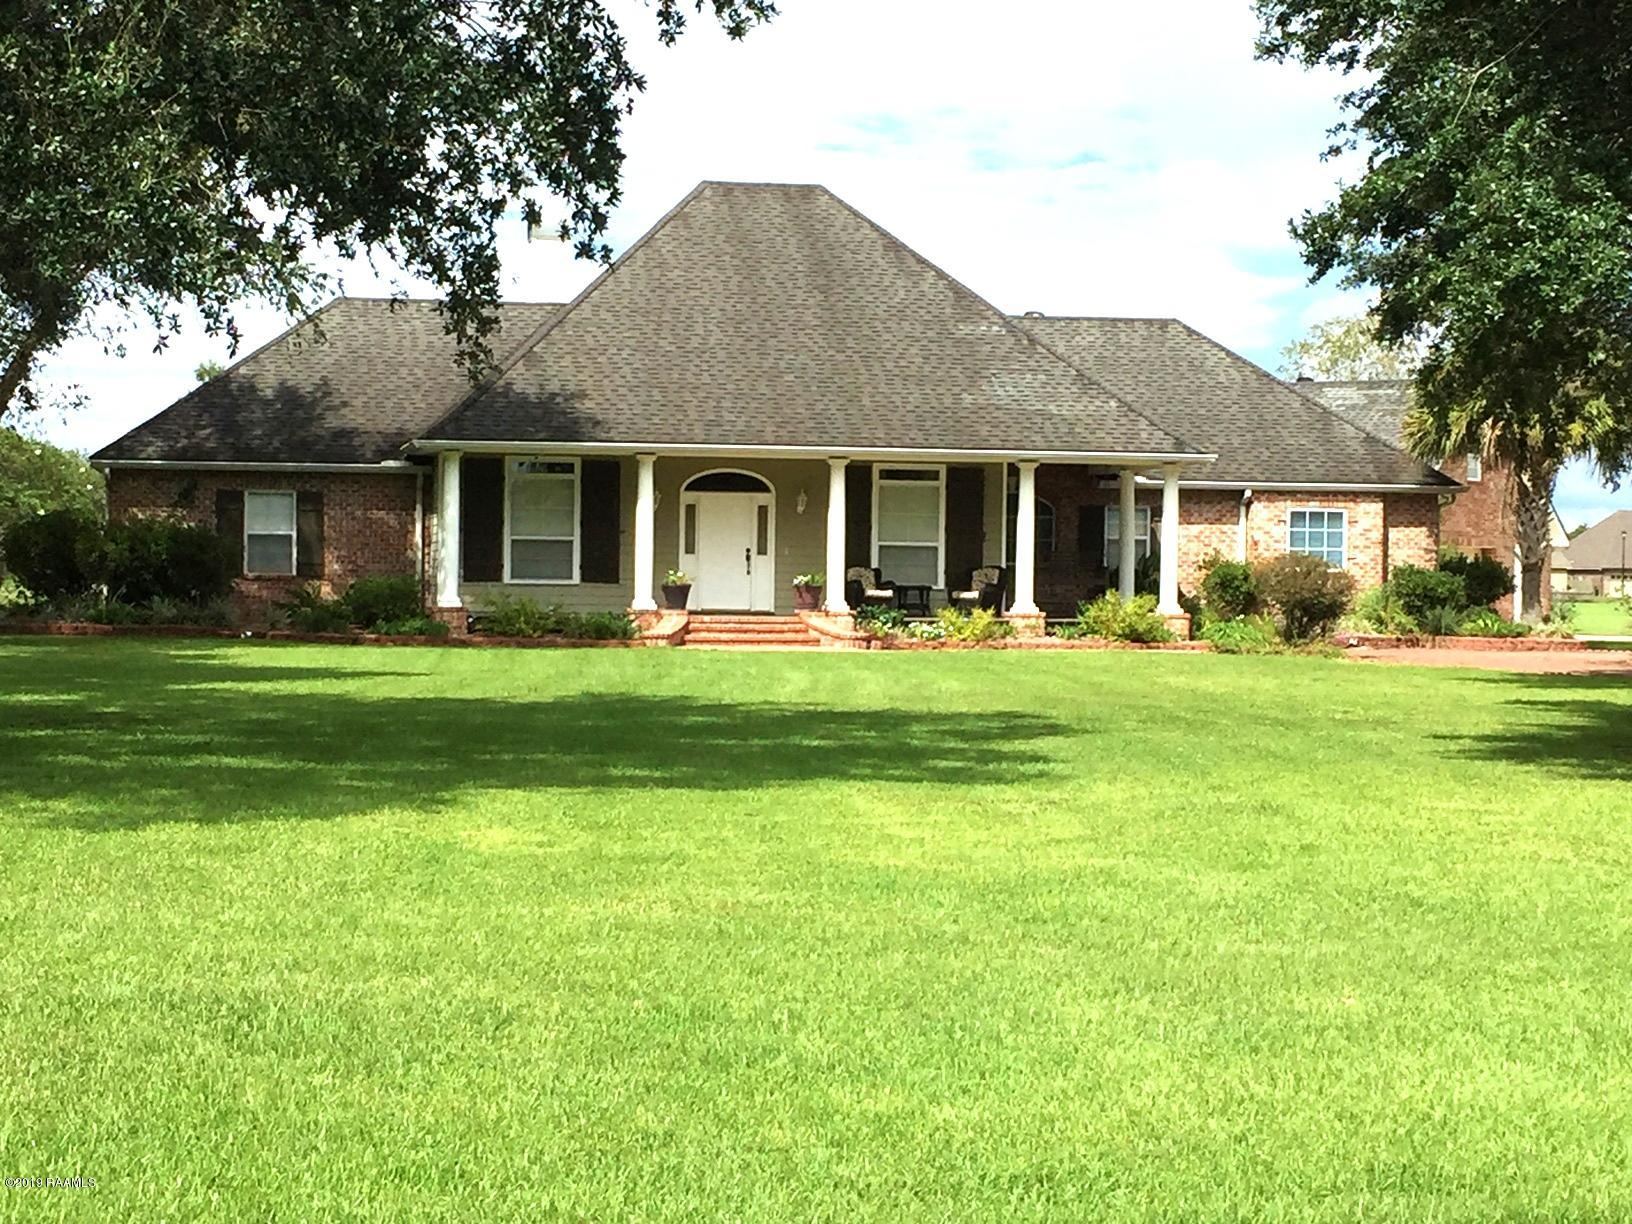 406 Copperfield Way, Youngsville, LA 70592 Photo #2